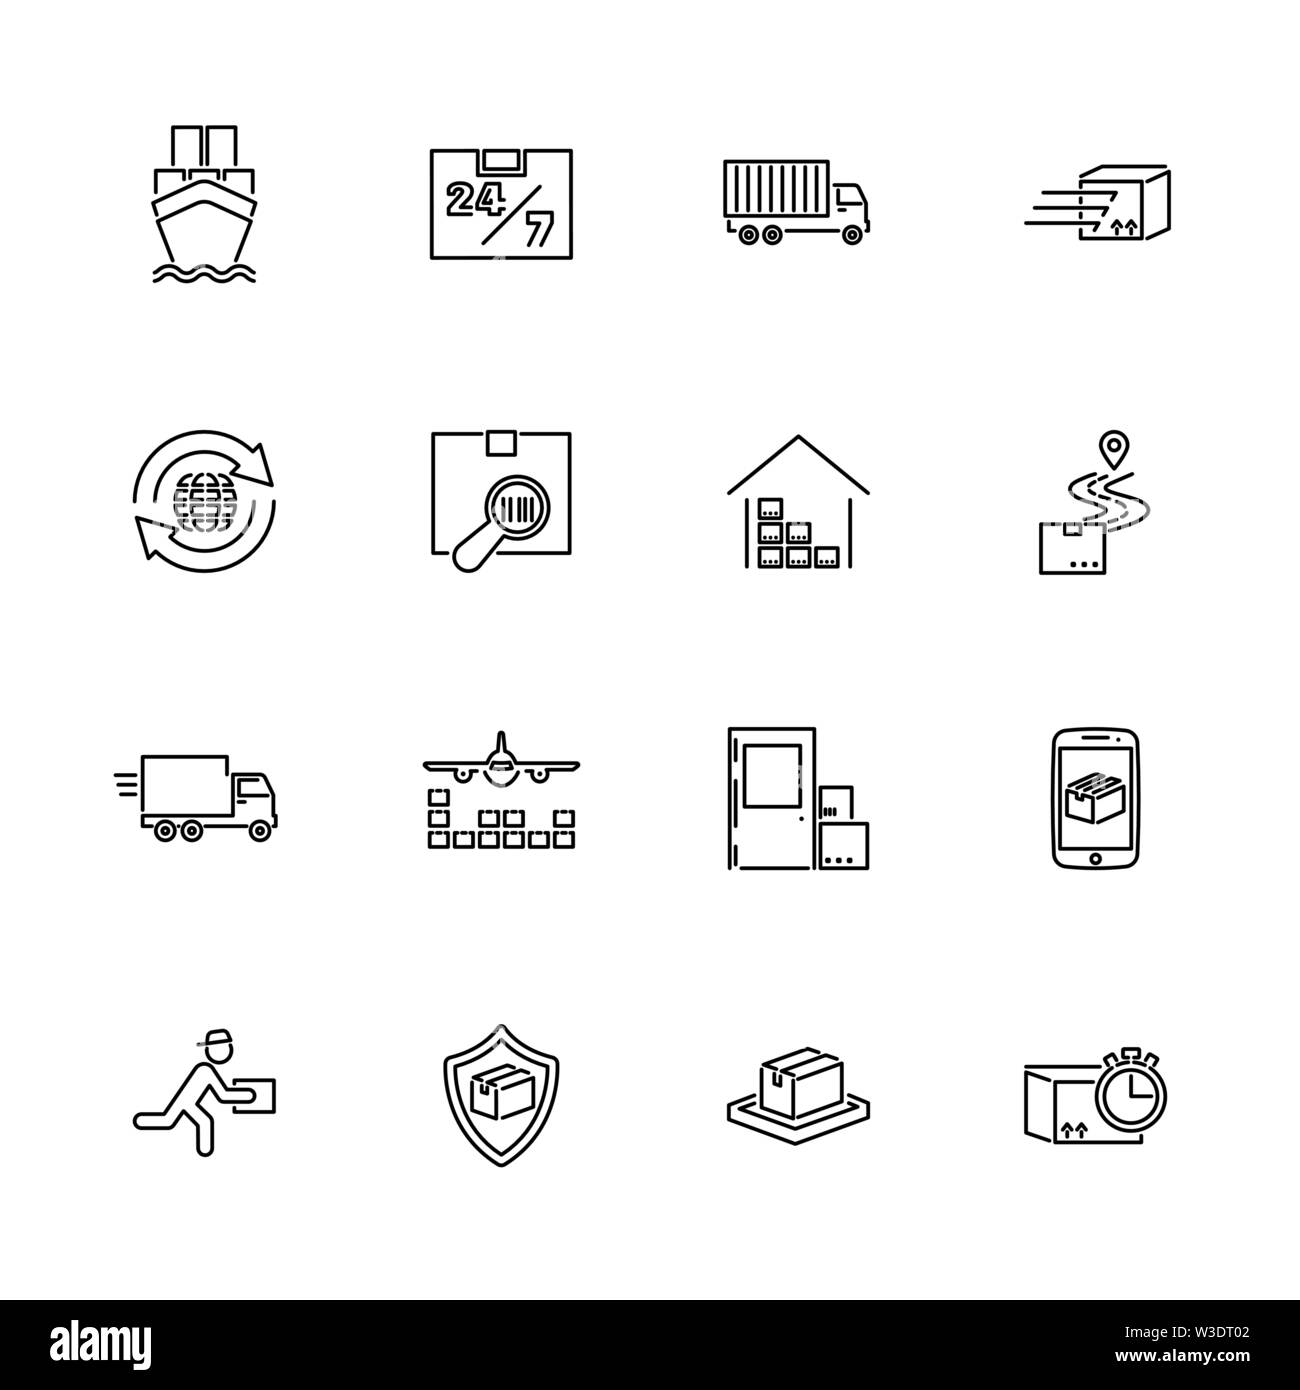 Shipping, Delivery Cargo outline icons set - Black symbol on white background. Shipping, Delivery Cargo Simple Illustration Symbol - lined simplicity - Stock Image